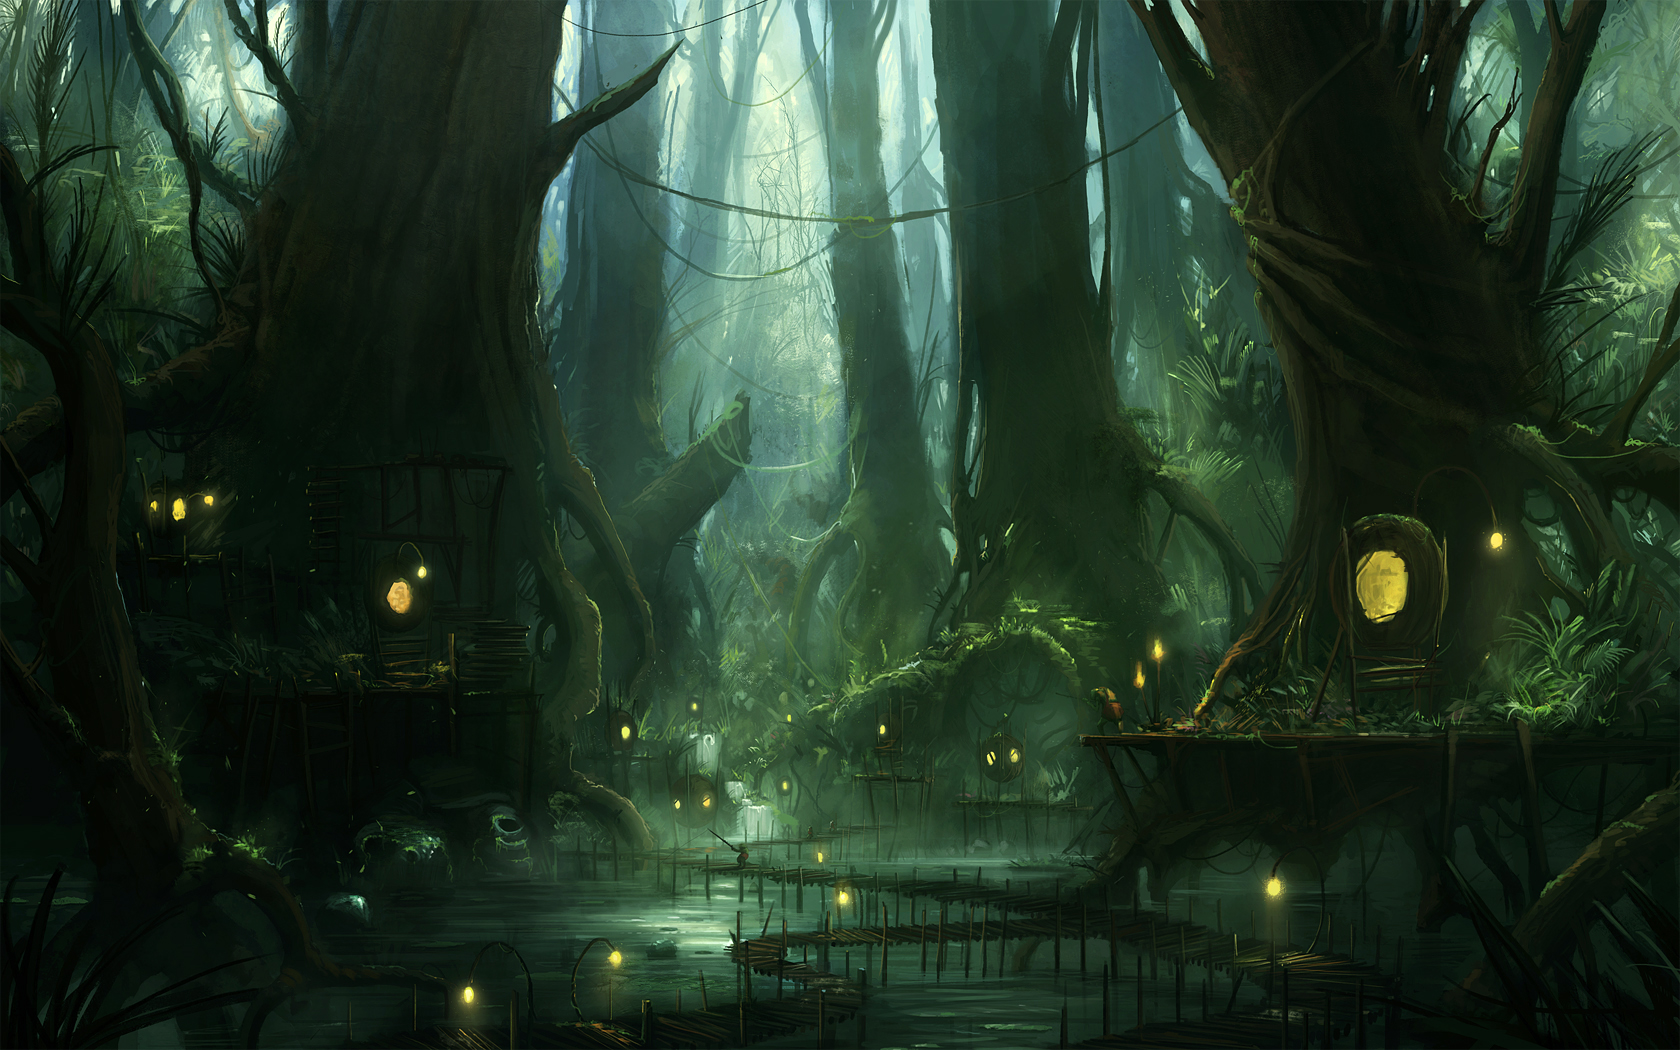 Swamp by JJcanvas